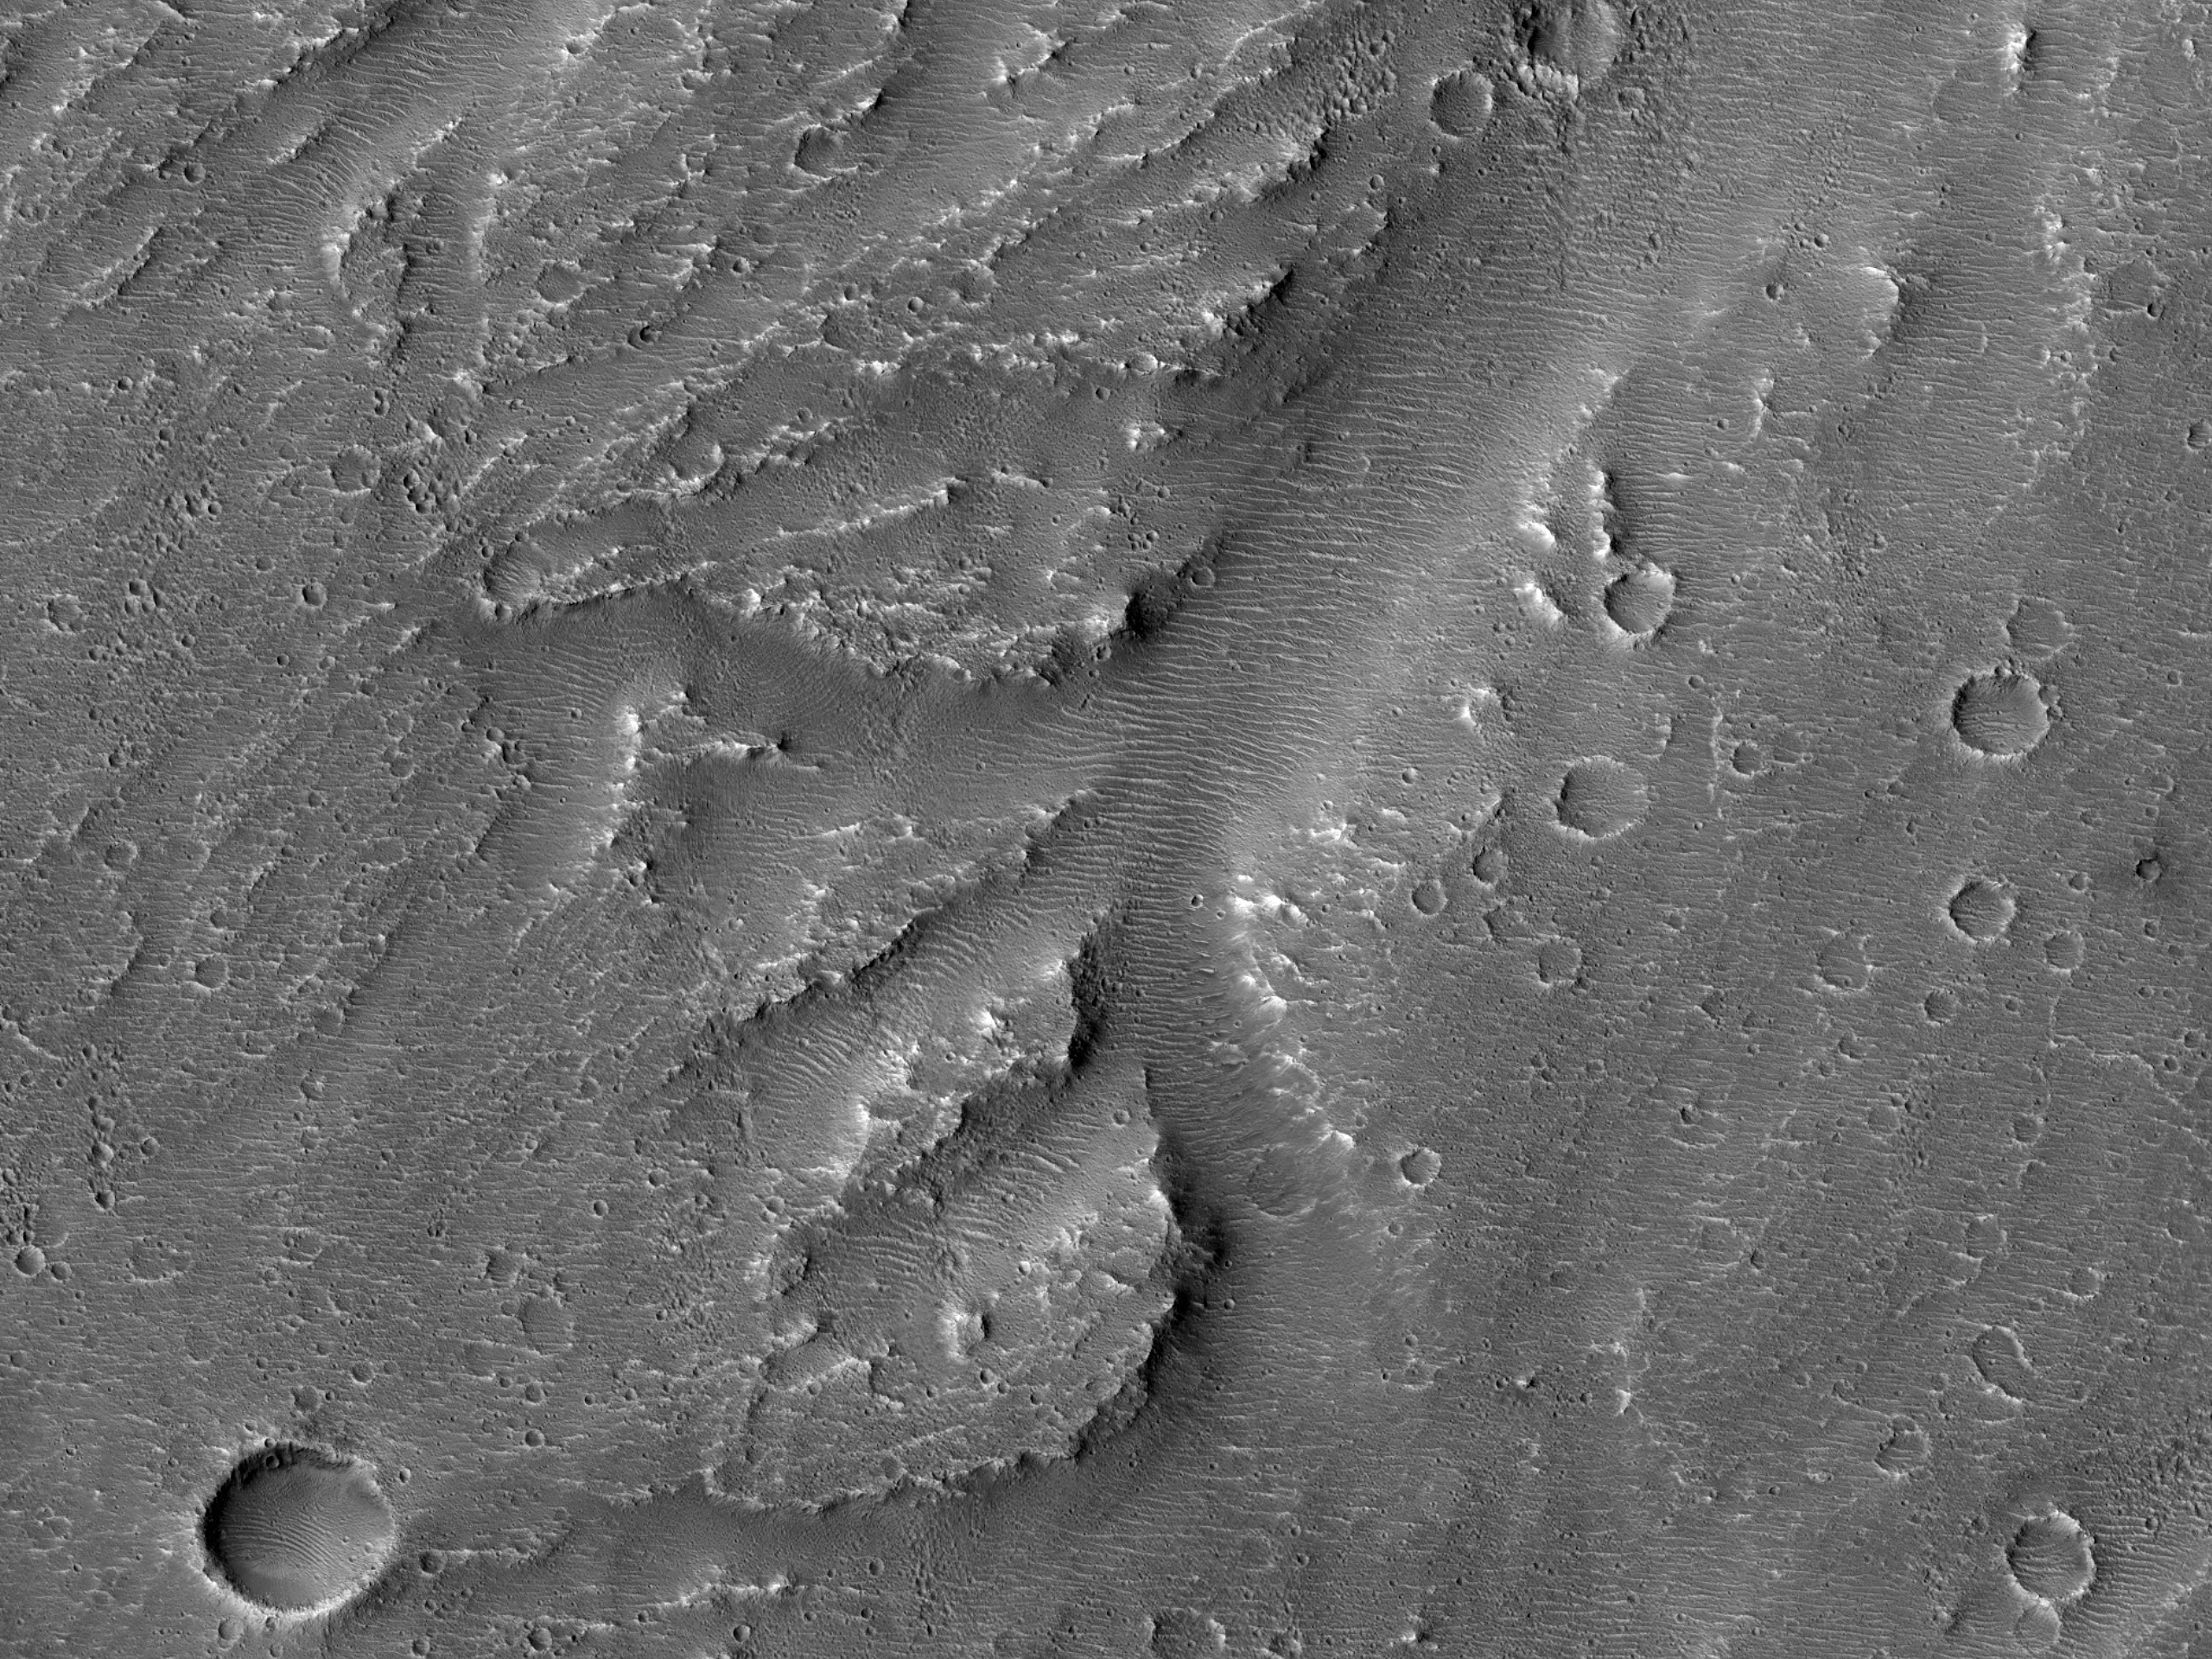 Shallow Branched Channel South of Etched Terrain in Ravi Vallis